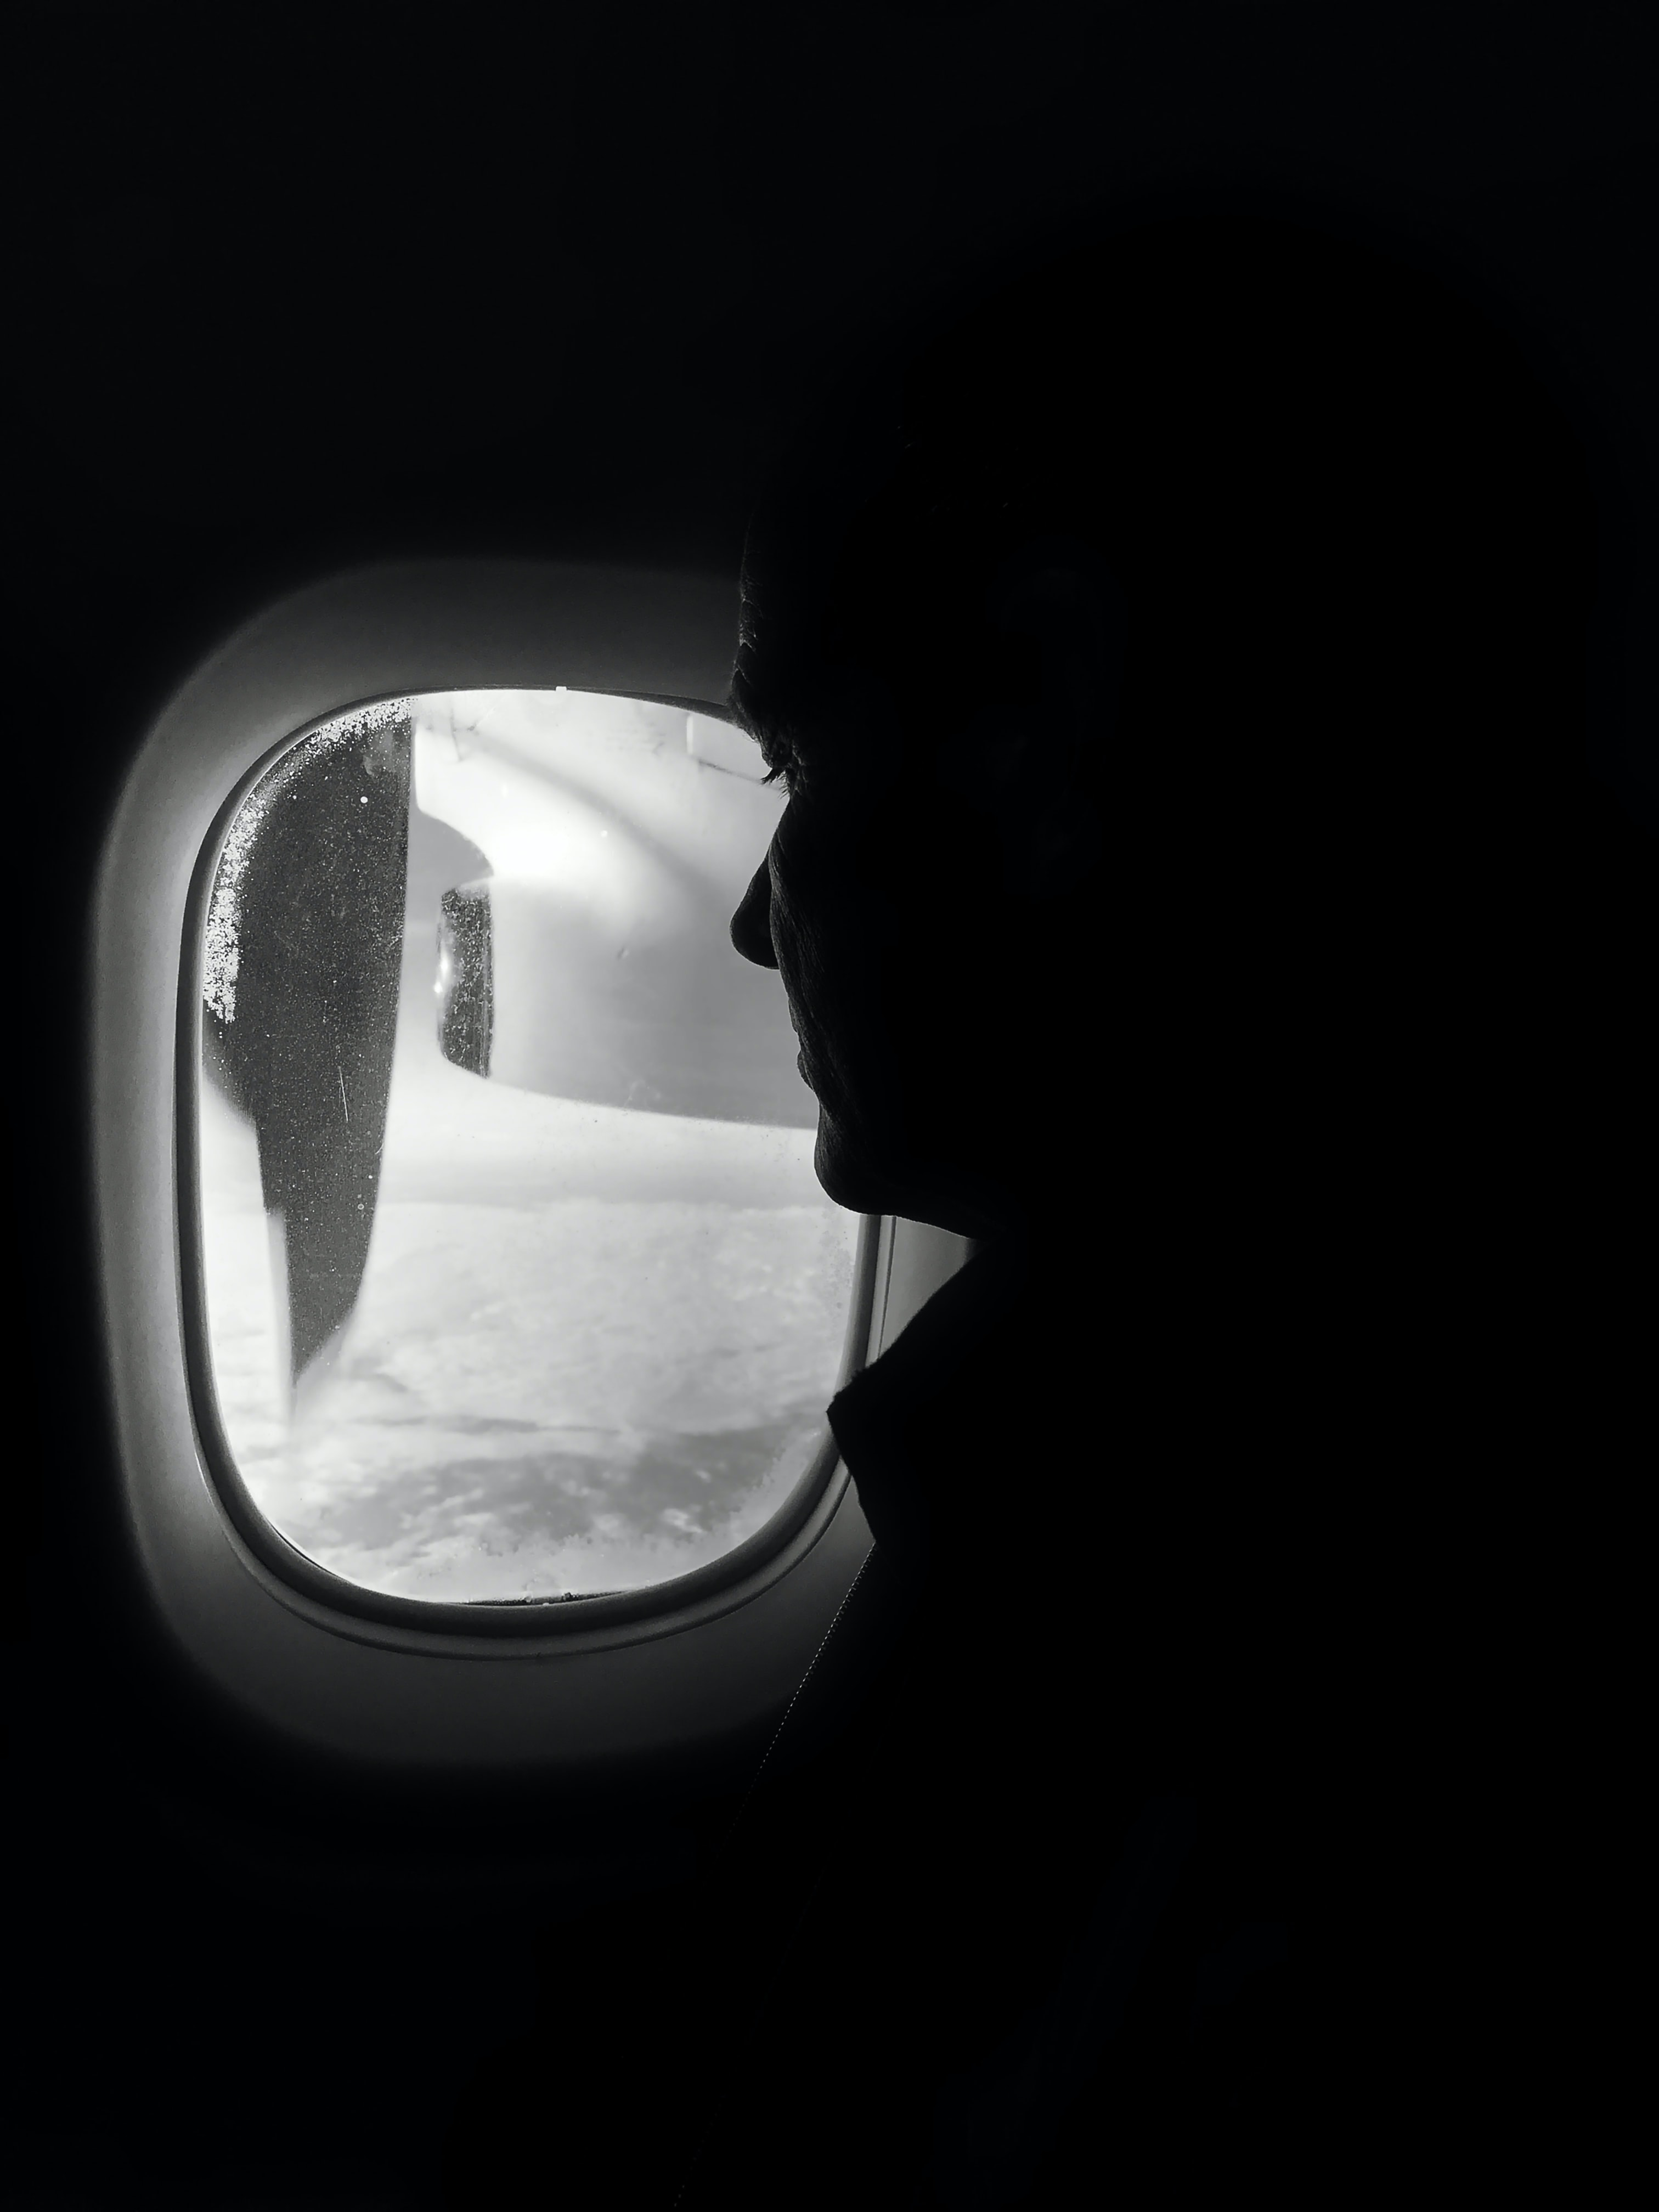 greyscale photo of person sitting inside plane